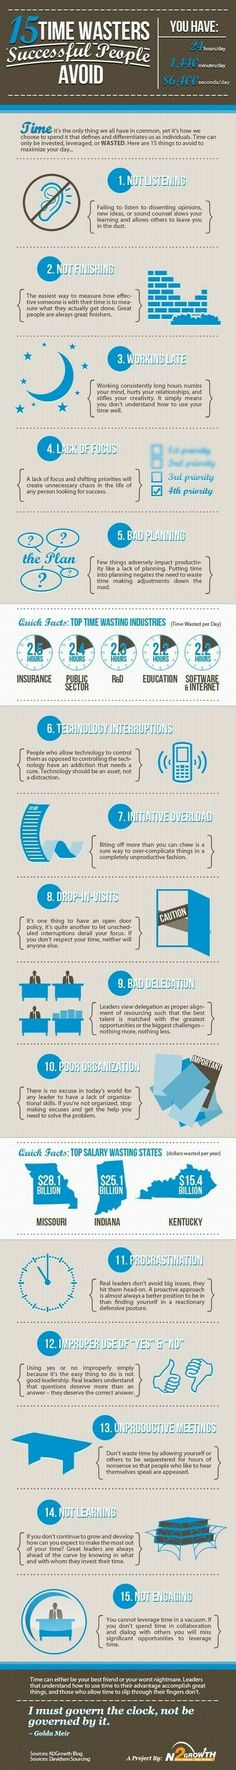 I love infographics. Must add learning to make these to my to-do list.